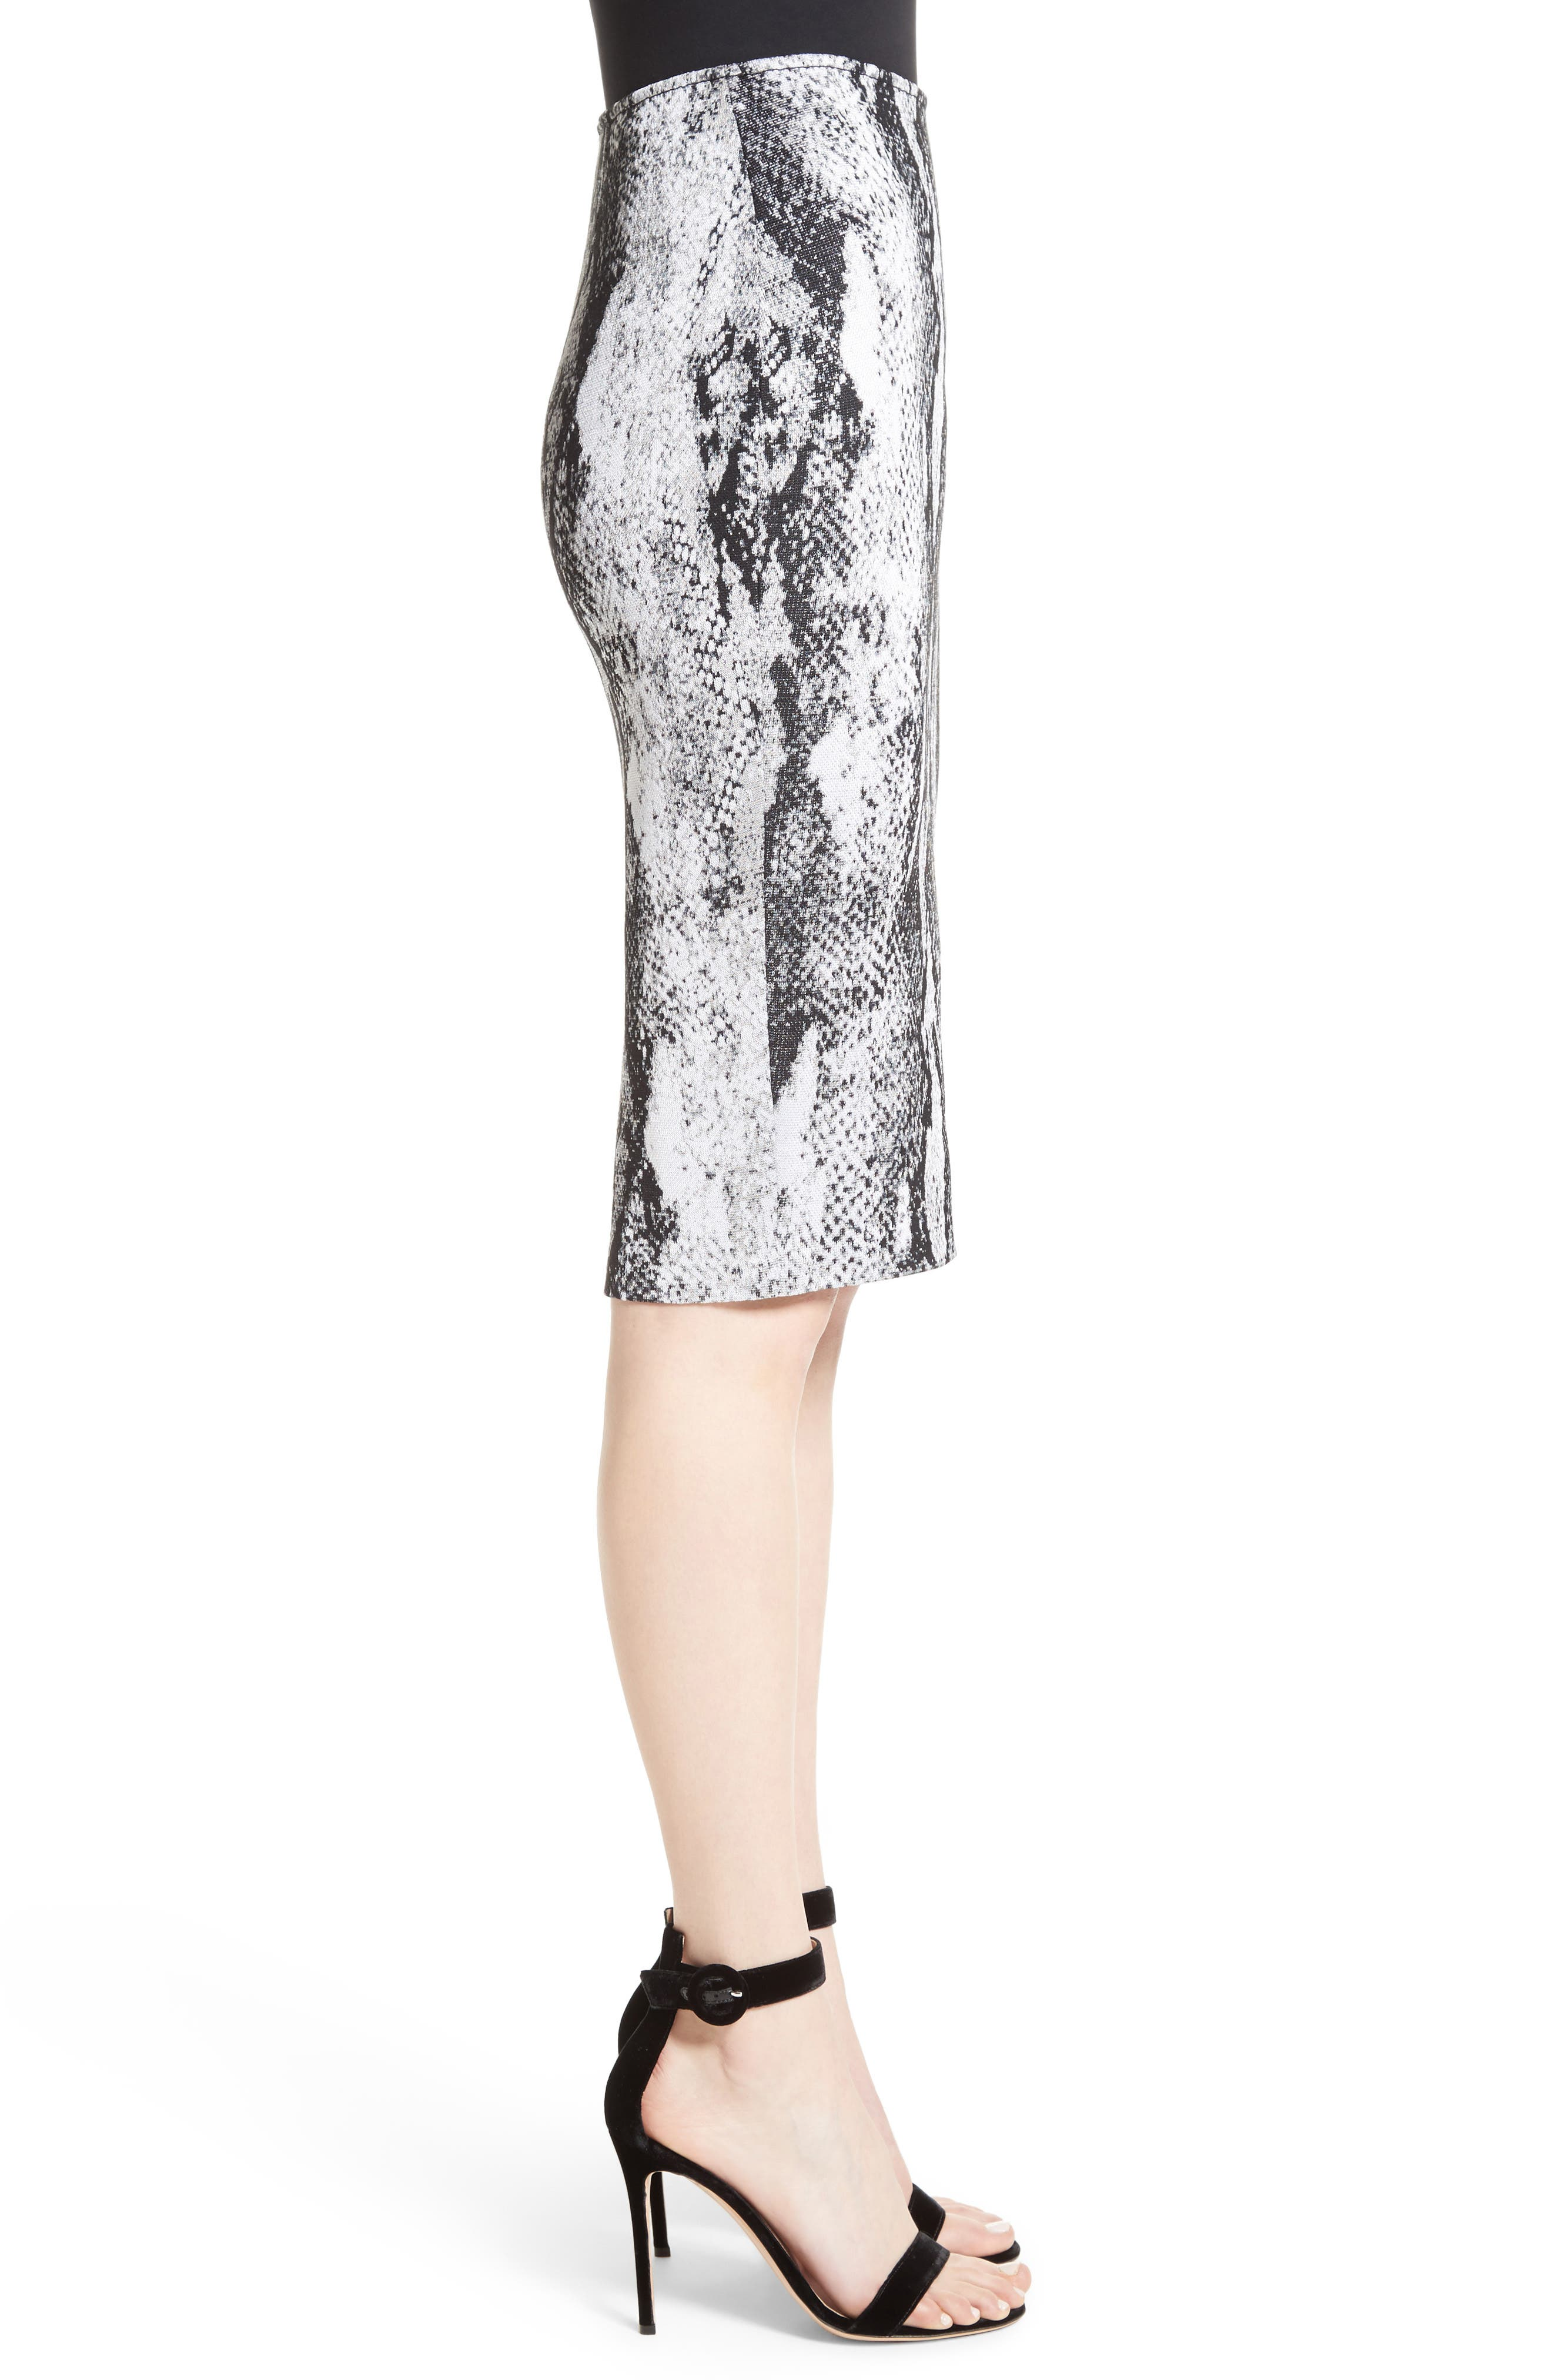 Raja Snakeskin Knit Pencil Skirt,                             Alternate thumbnail 3, color,                             050